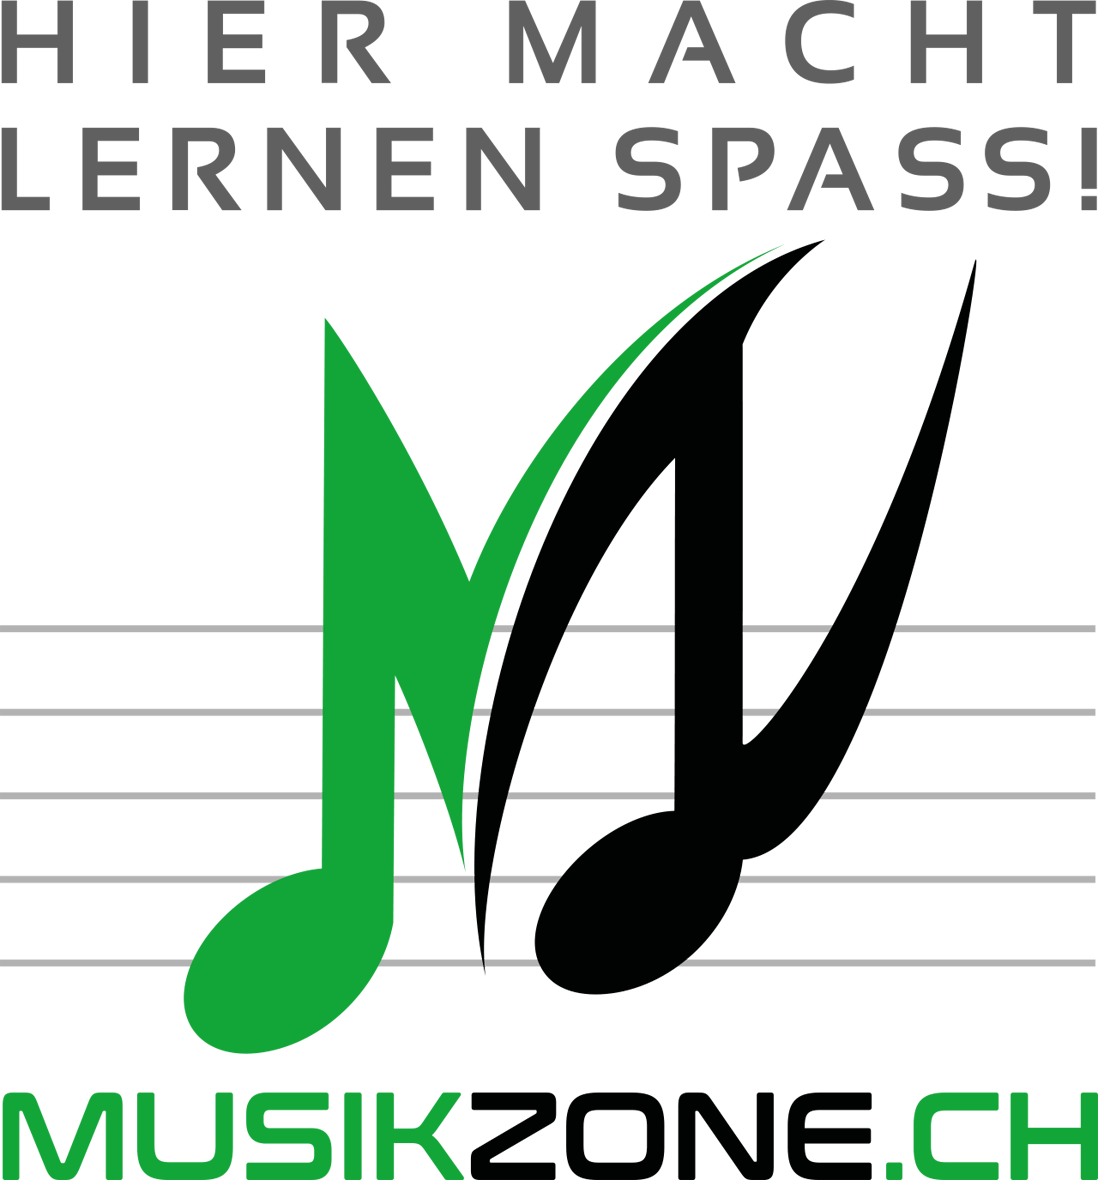 musikzone-logo-1280-square-spass-0